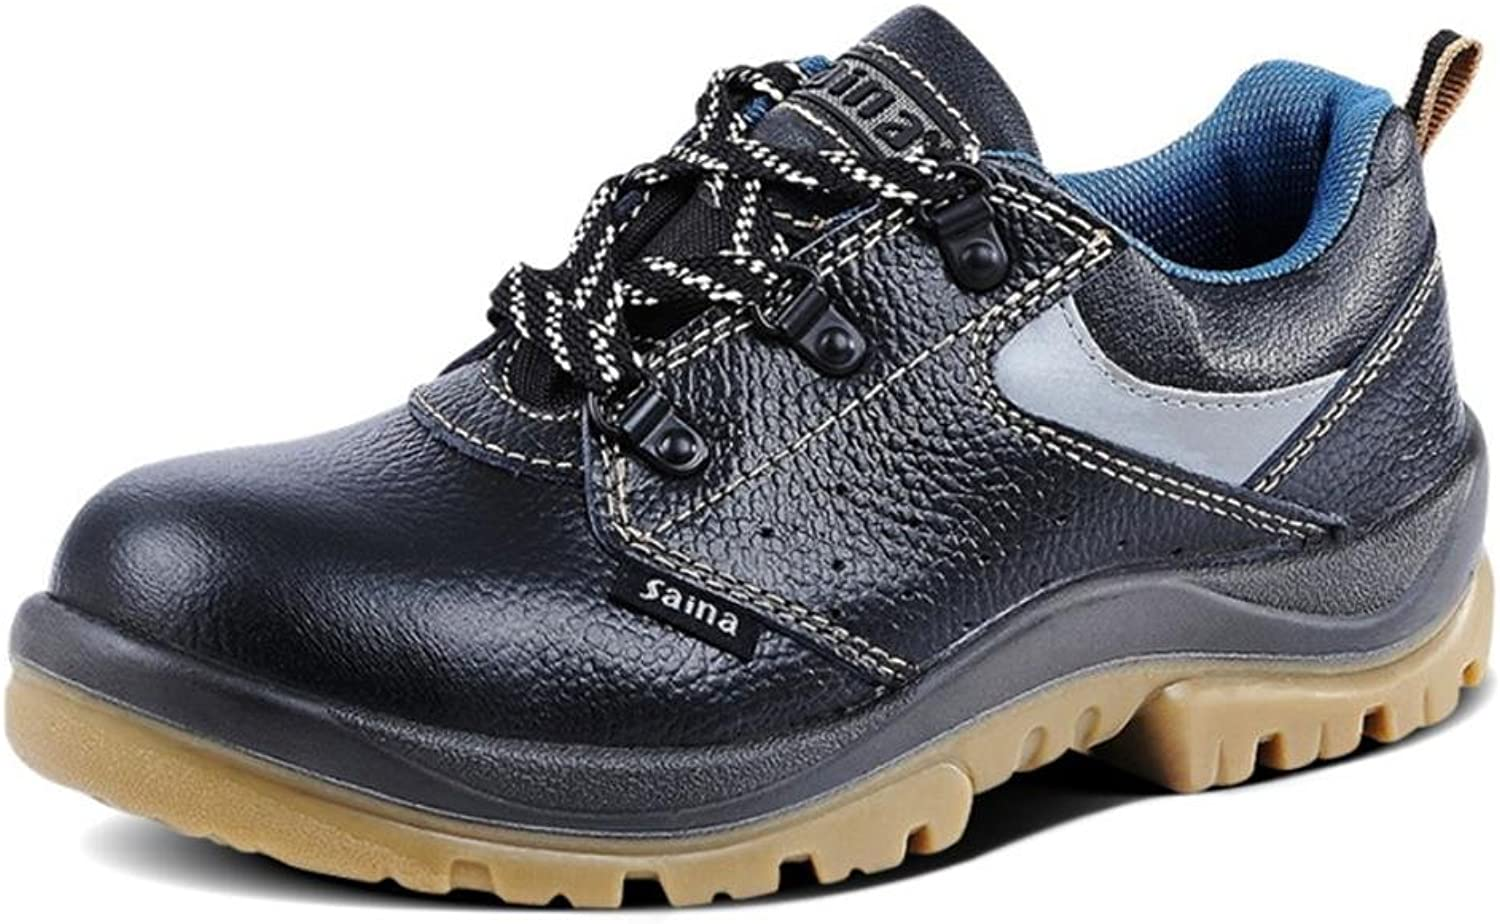 NANYDXIE Men And Women Genuine Leather Lace Breathable Anti-smashing Work shoes Safety shoes